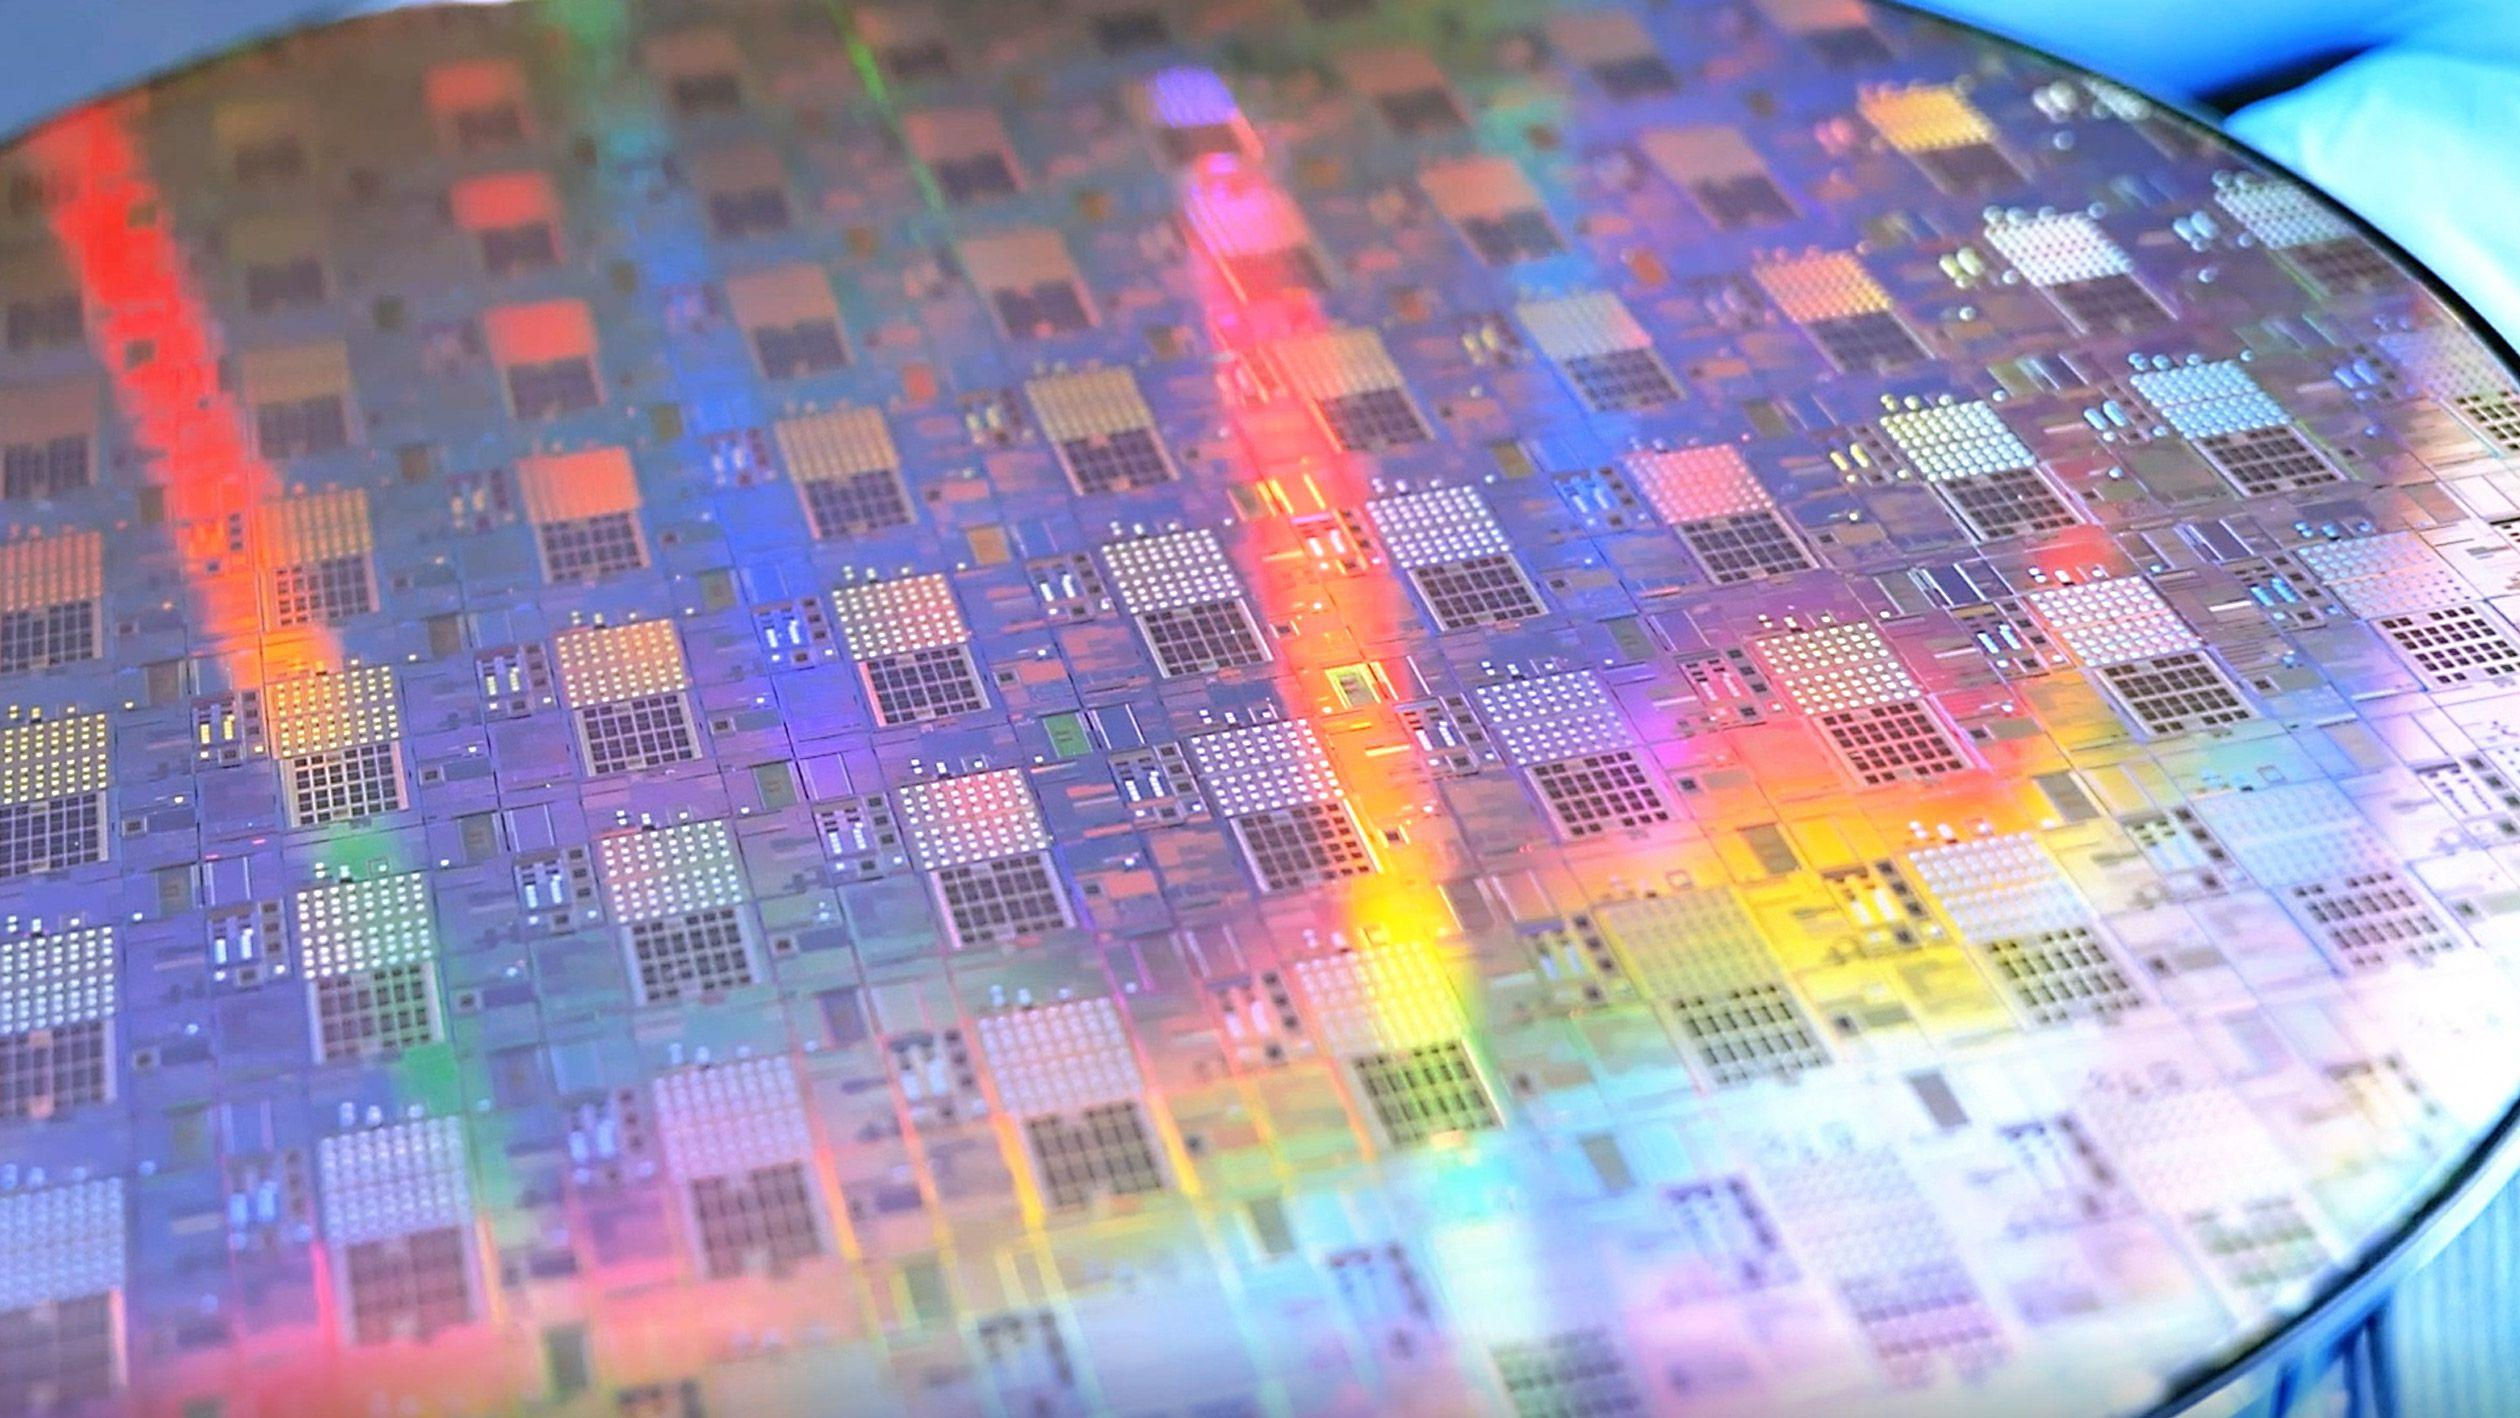 A new chip packaging tech & a first in analog compute